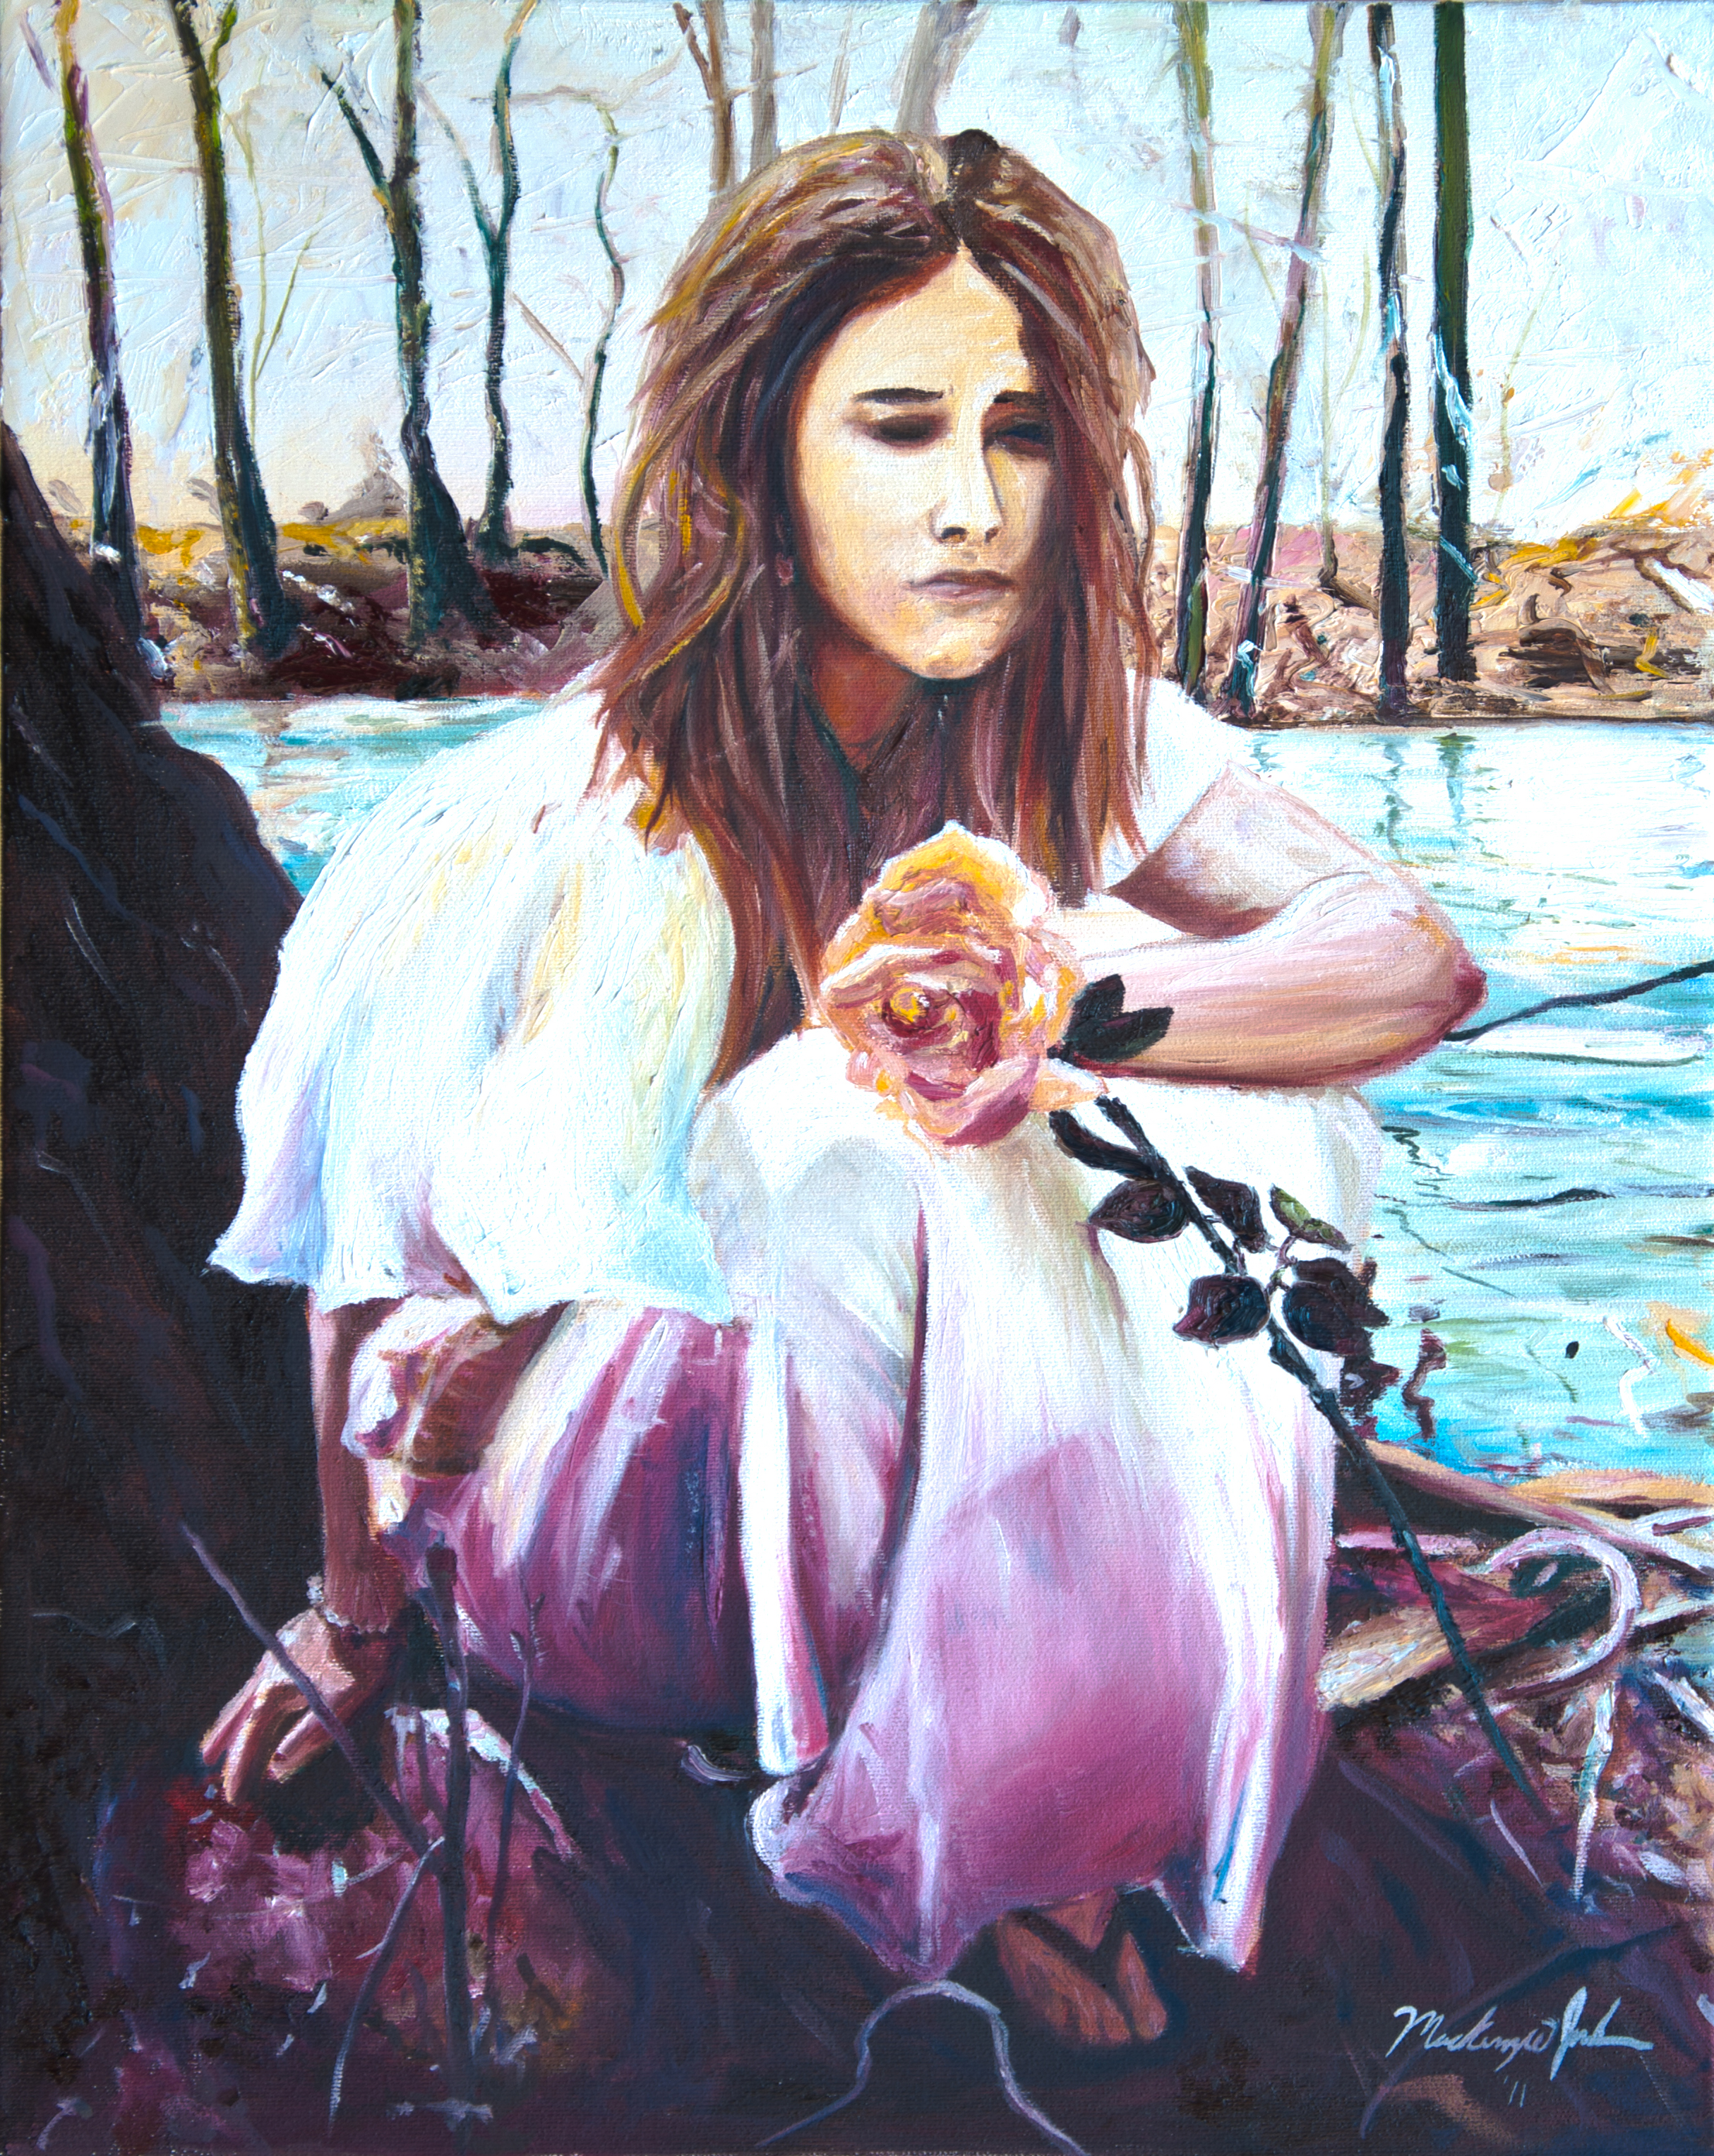 ... portrait of my beautiful friend Lily was done with Waterhouse in mind